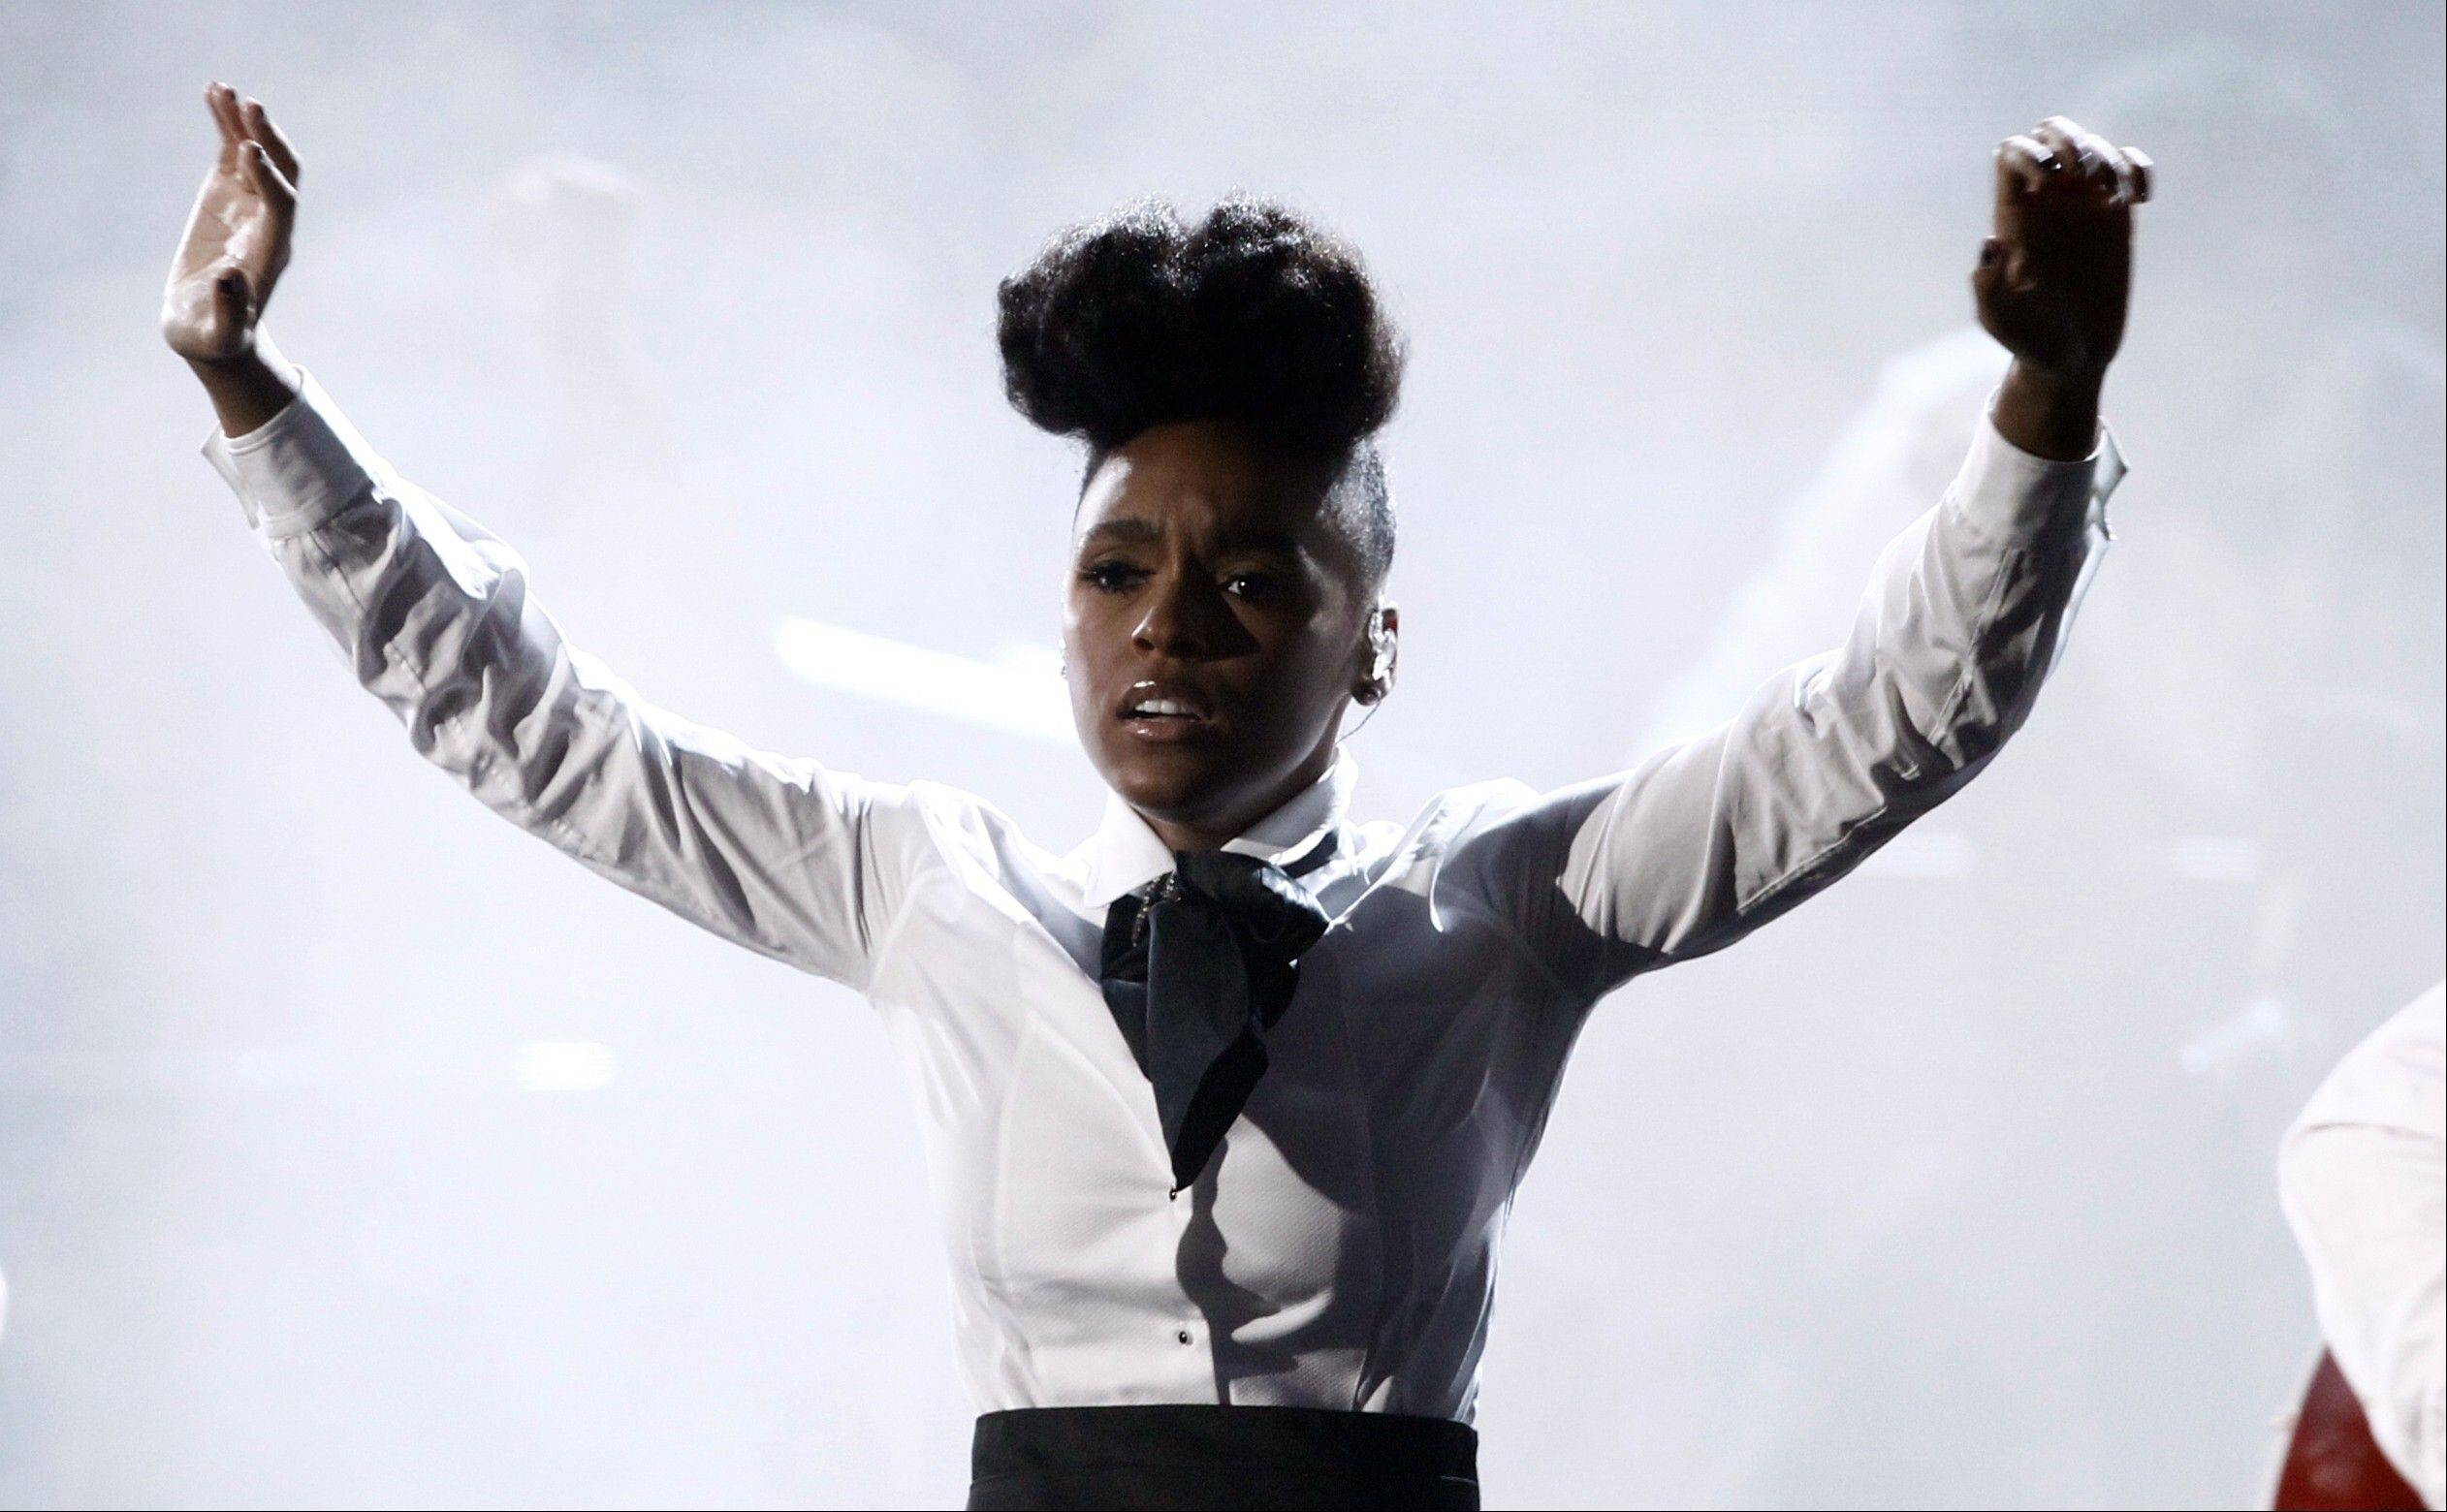 Janelle Monae says she�s an avid thrift shopper, namedropping stores like Little Five Points, Ragarama and Poor Little Rich Girl as her favorites in her Atlanta hometown.